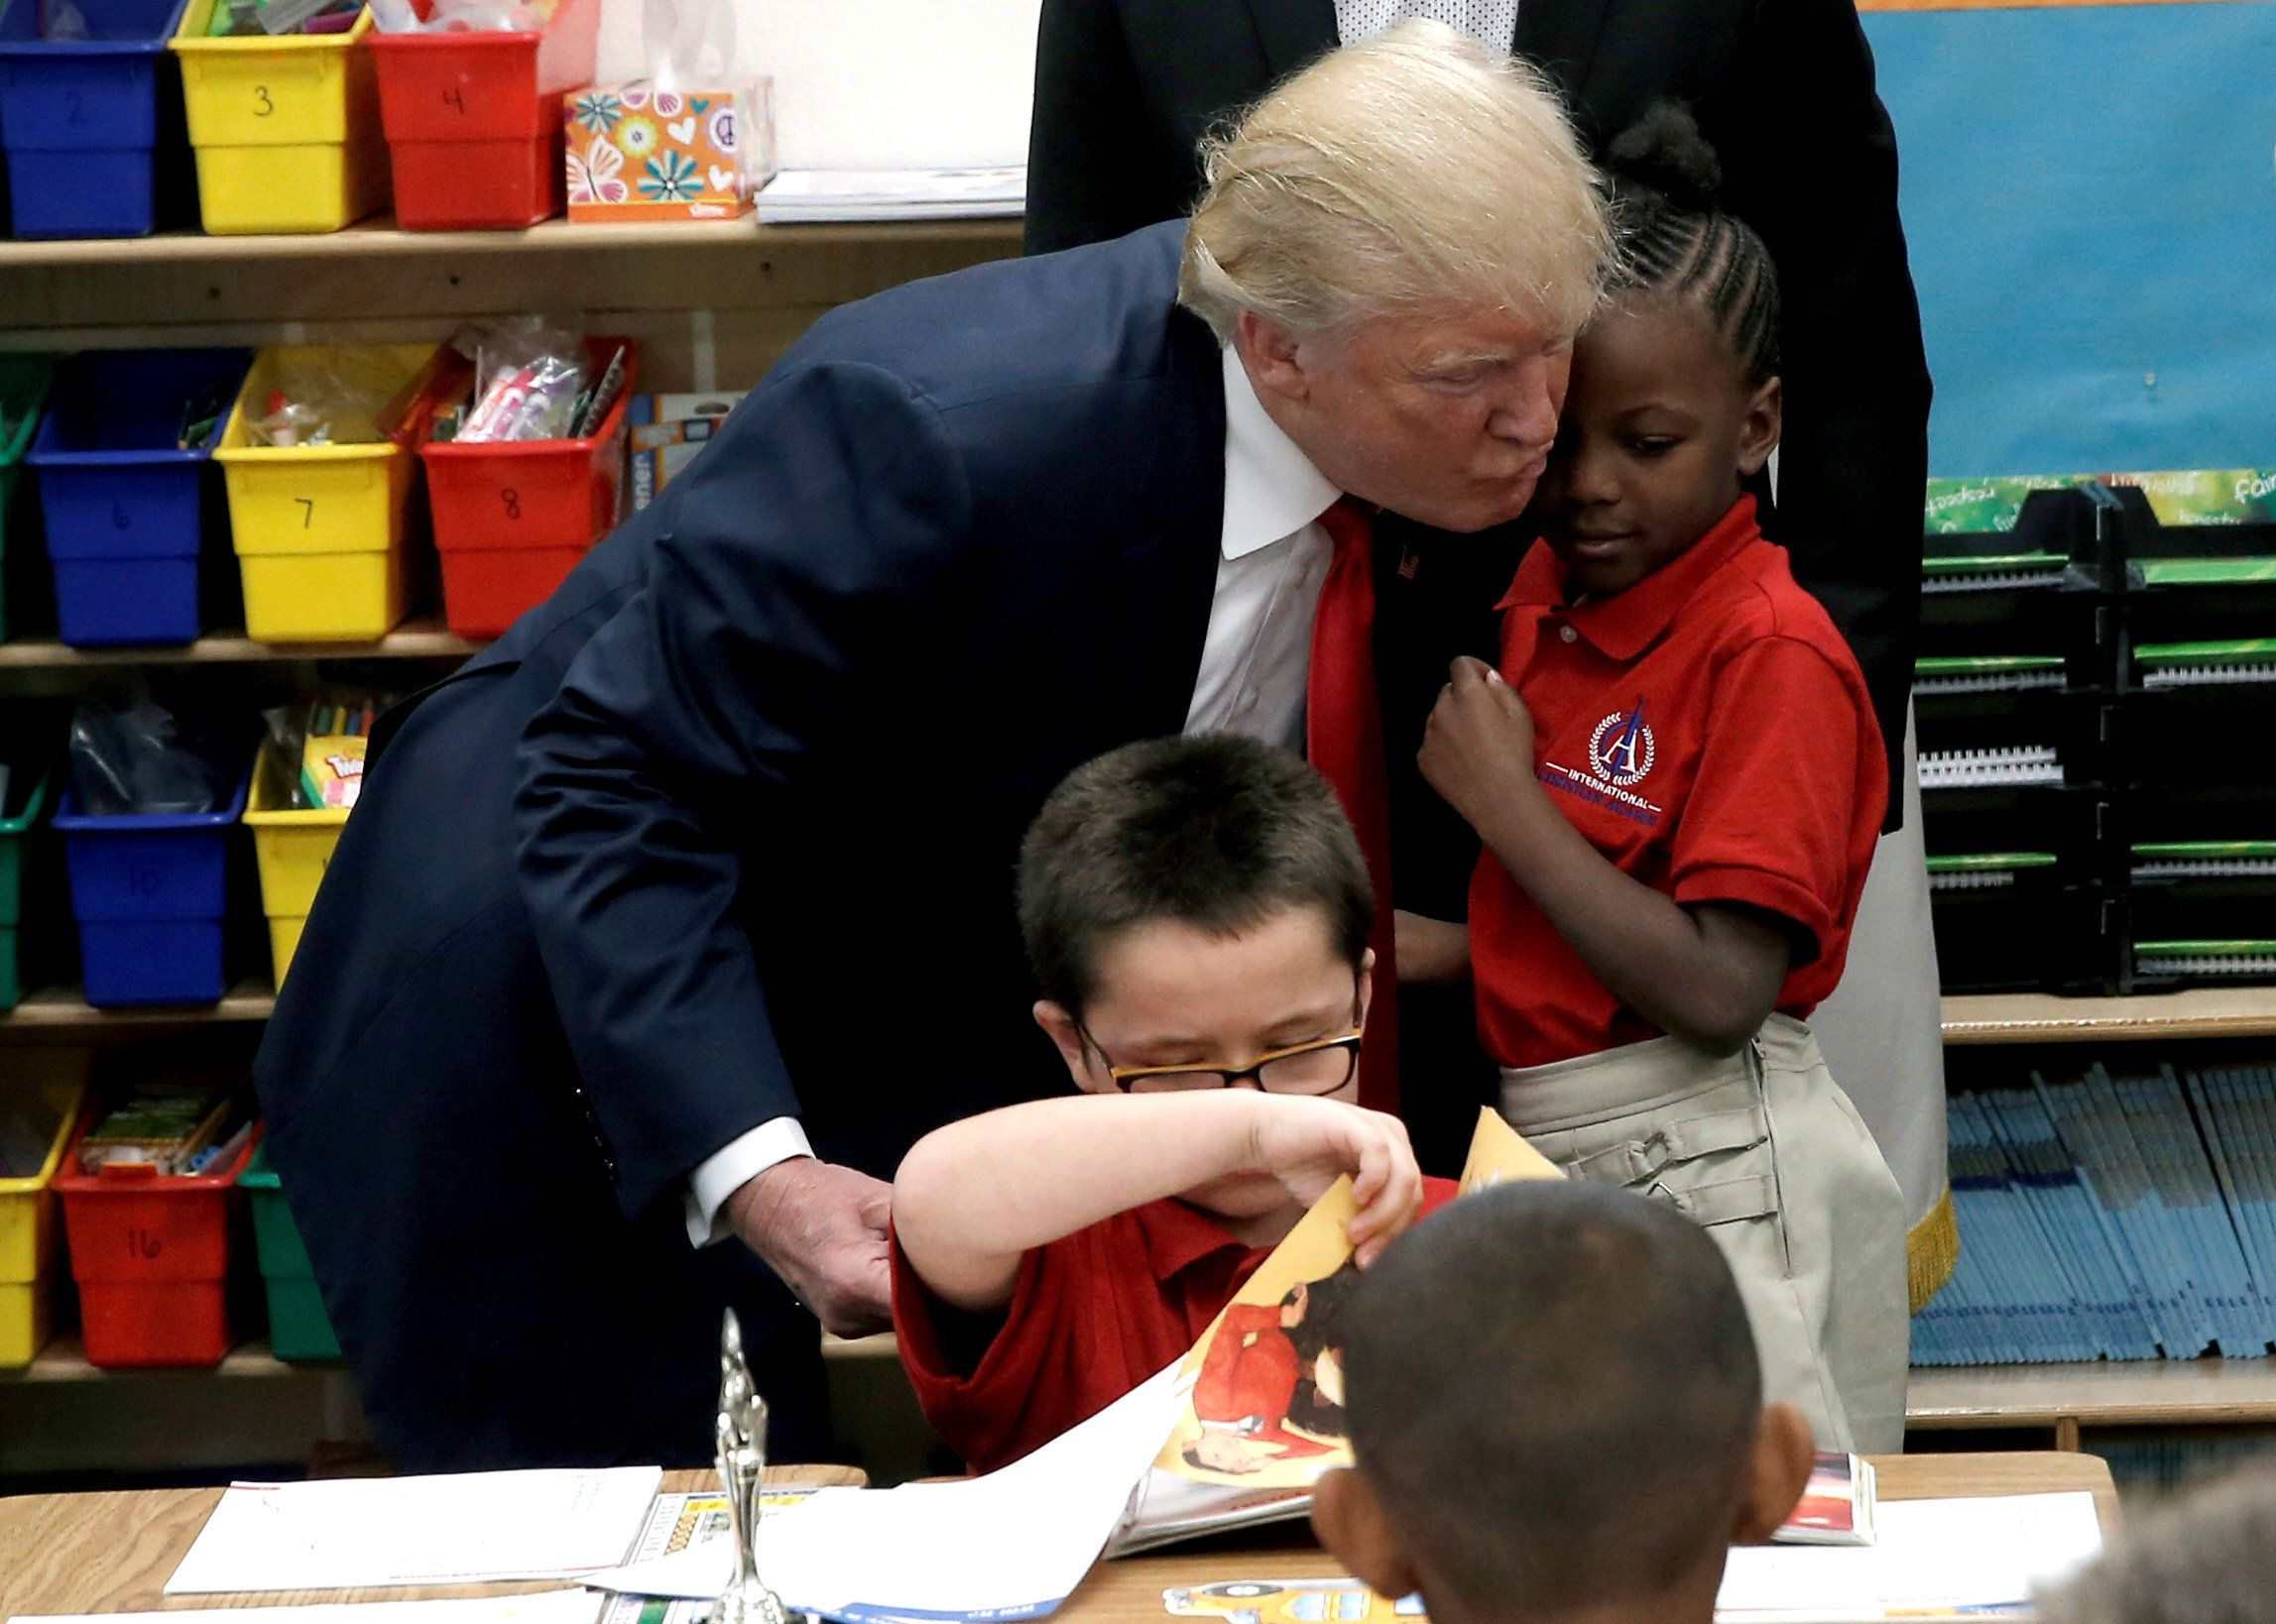 President-elect Donald Trump hugs a student after receiving a Bible as a gift during a campaign visit to the Internation